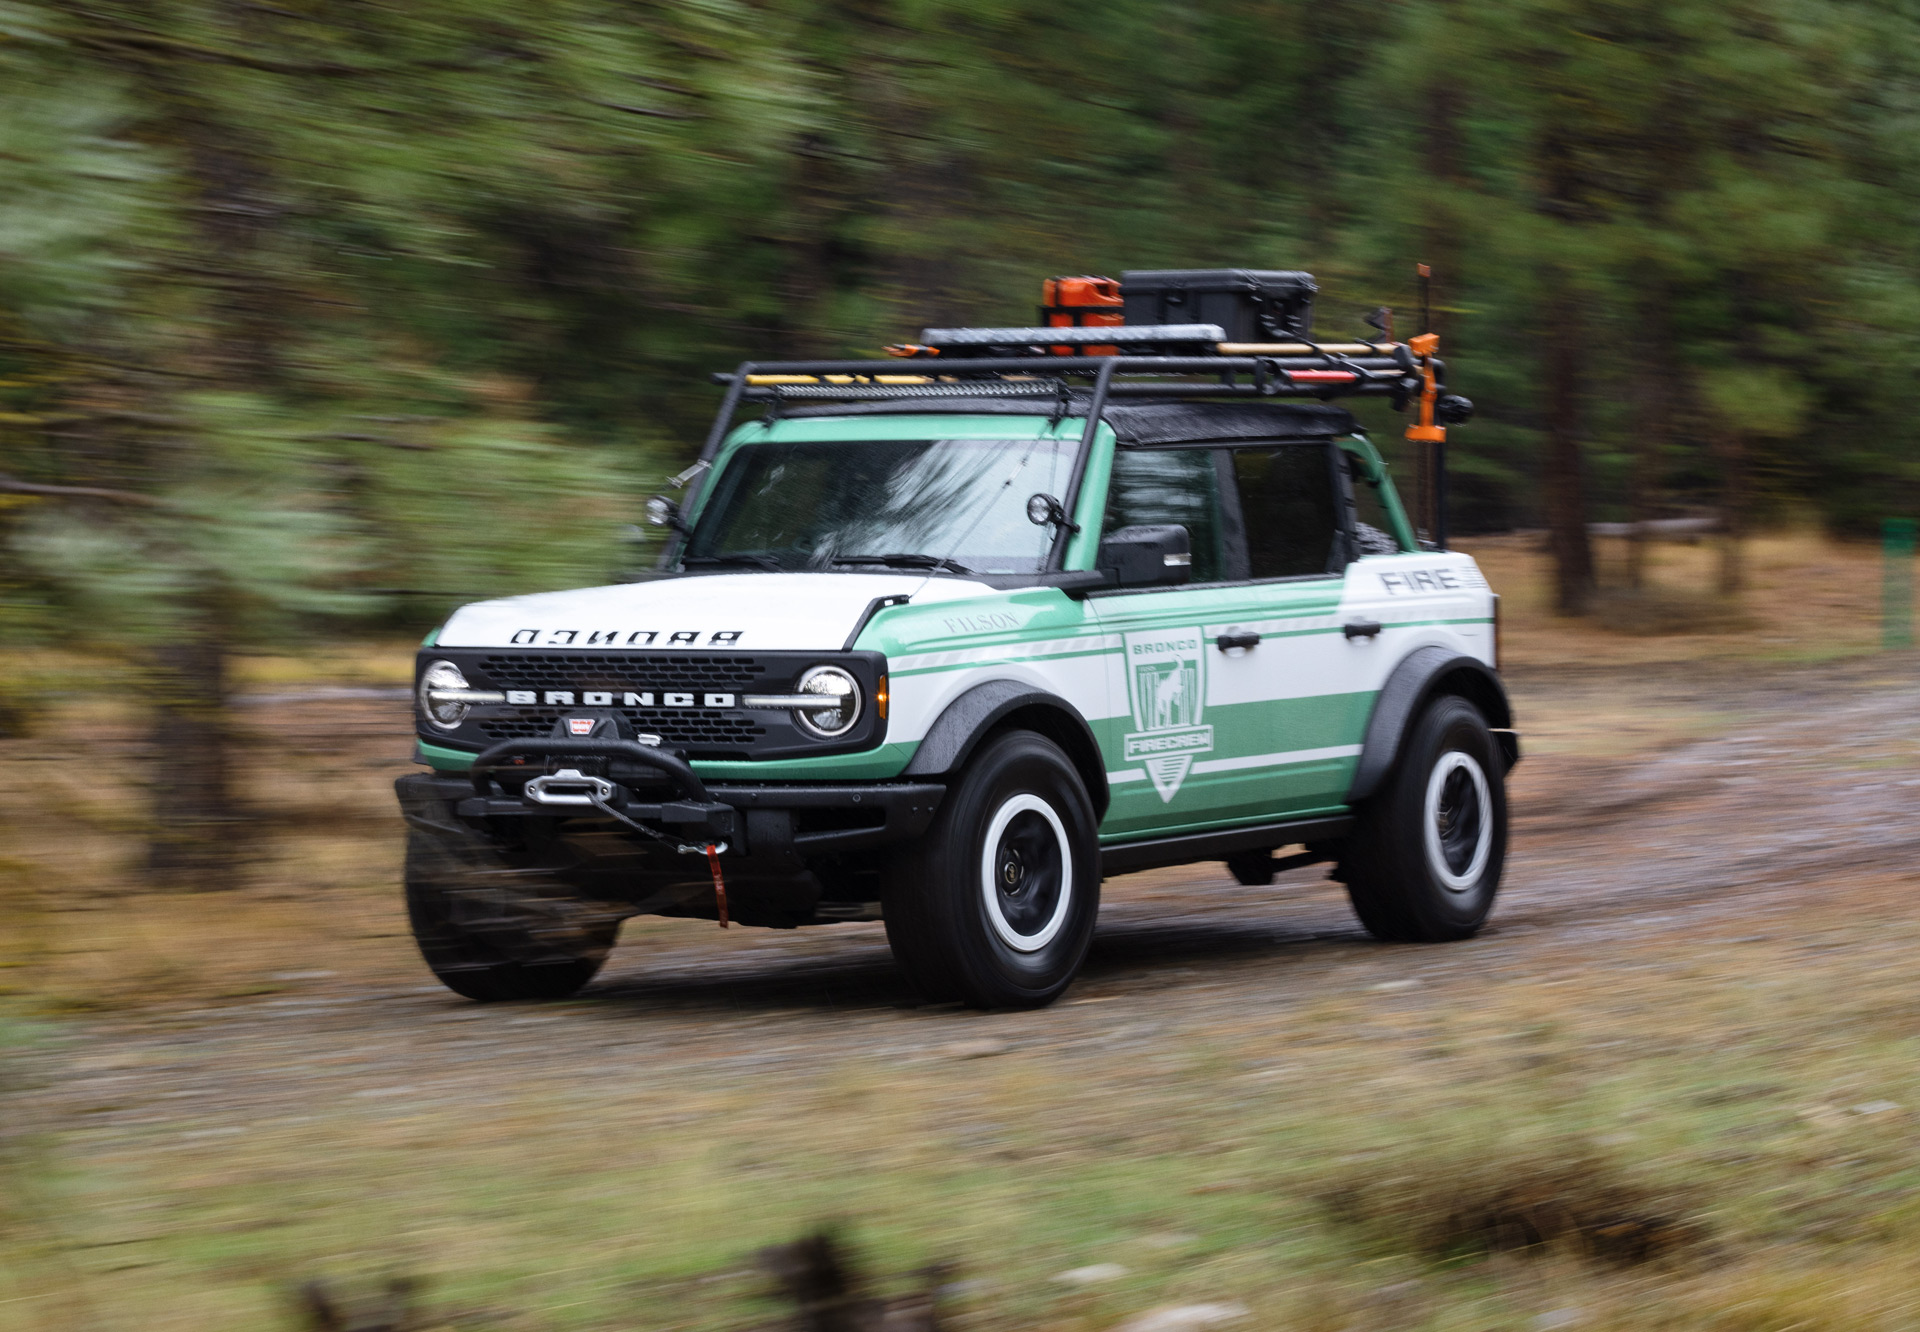 Ford and Filson imagine a Bronco first responder vehicle